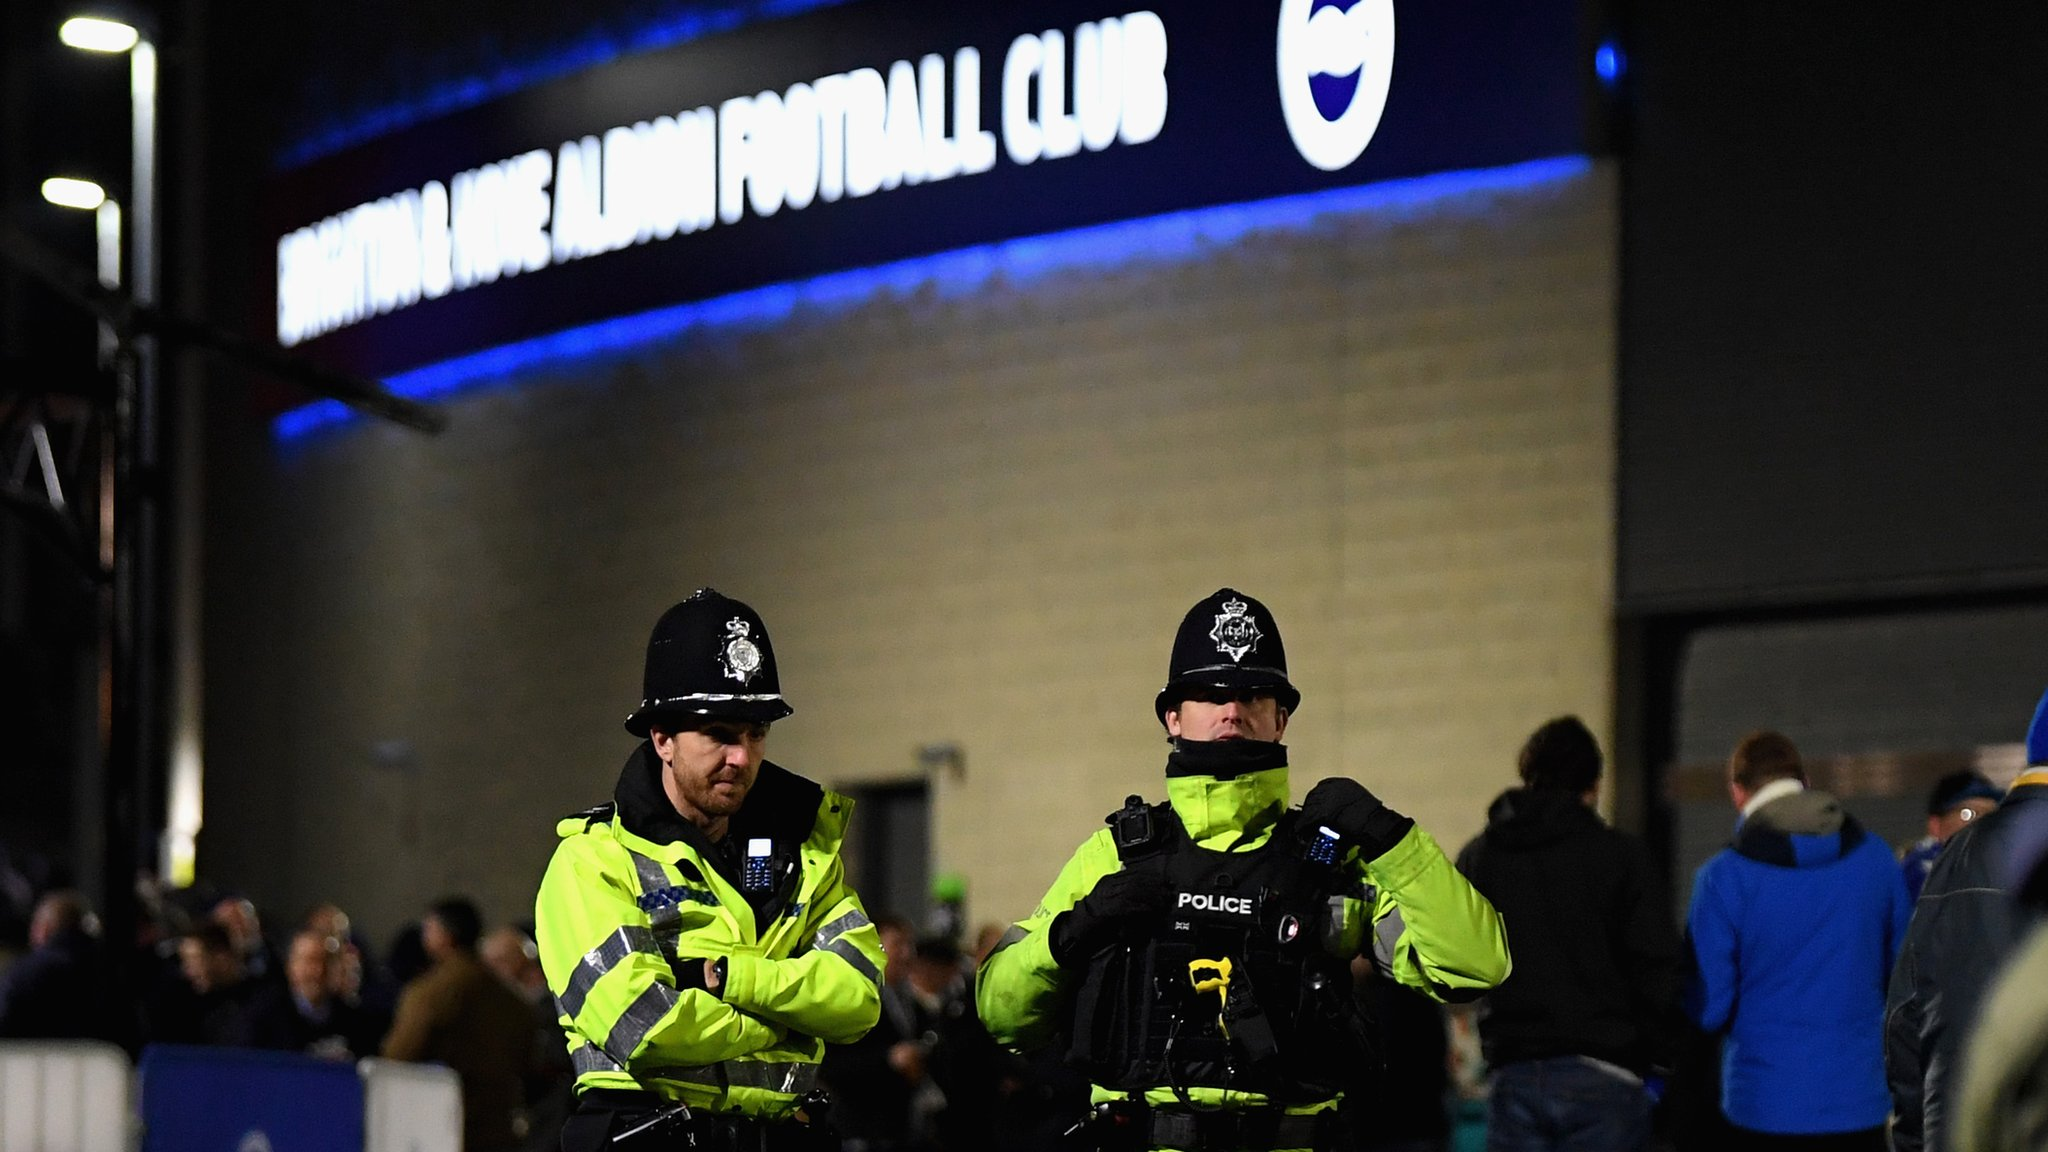 'Palace fans with tickets held for 45 minutes by police'